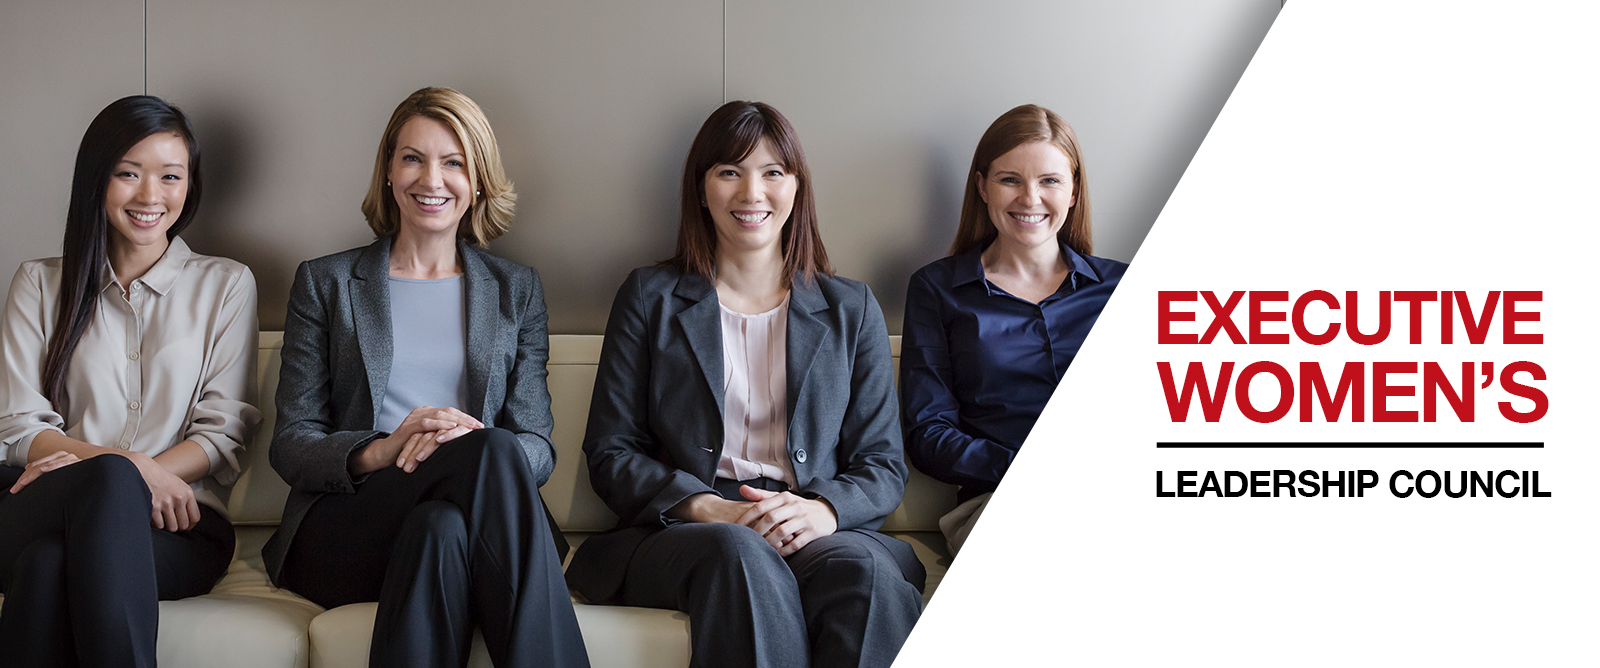 The Executive Women's Council provides support for women in executive  leadership roles by providing peer to peer networking, education, and  professional ...